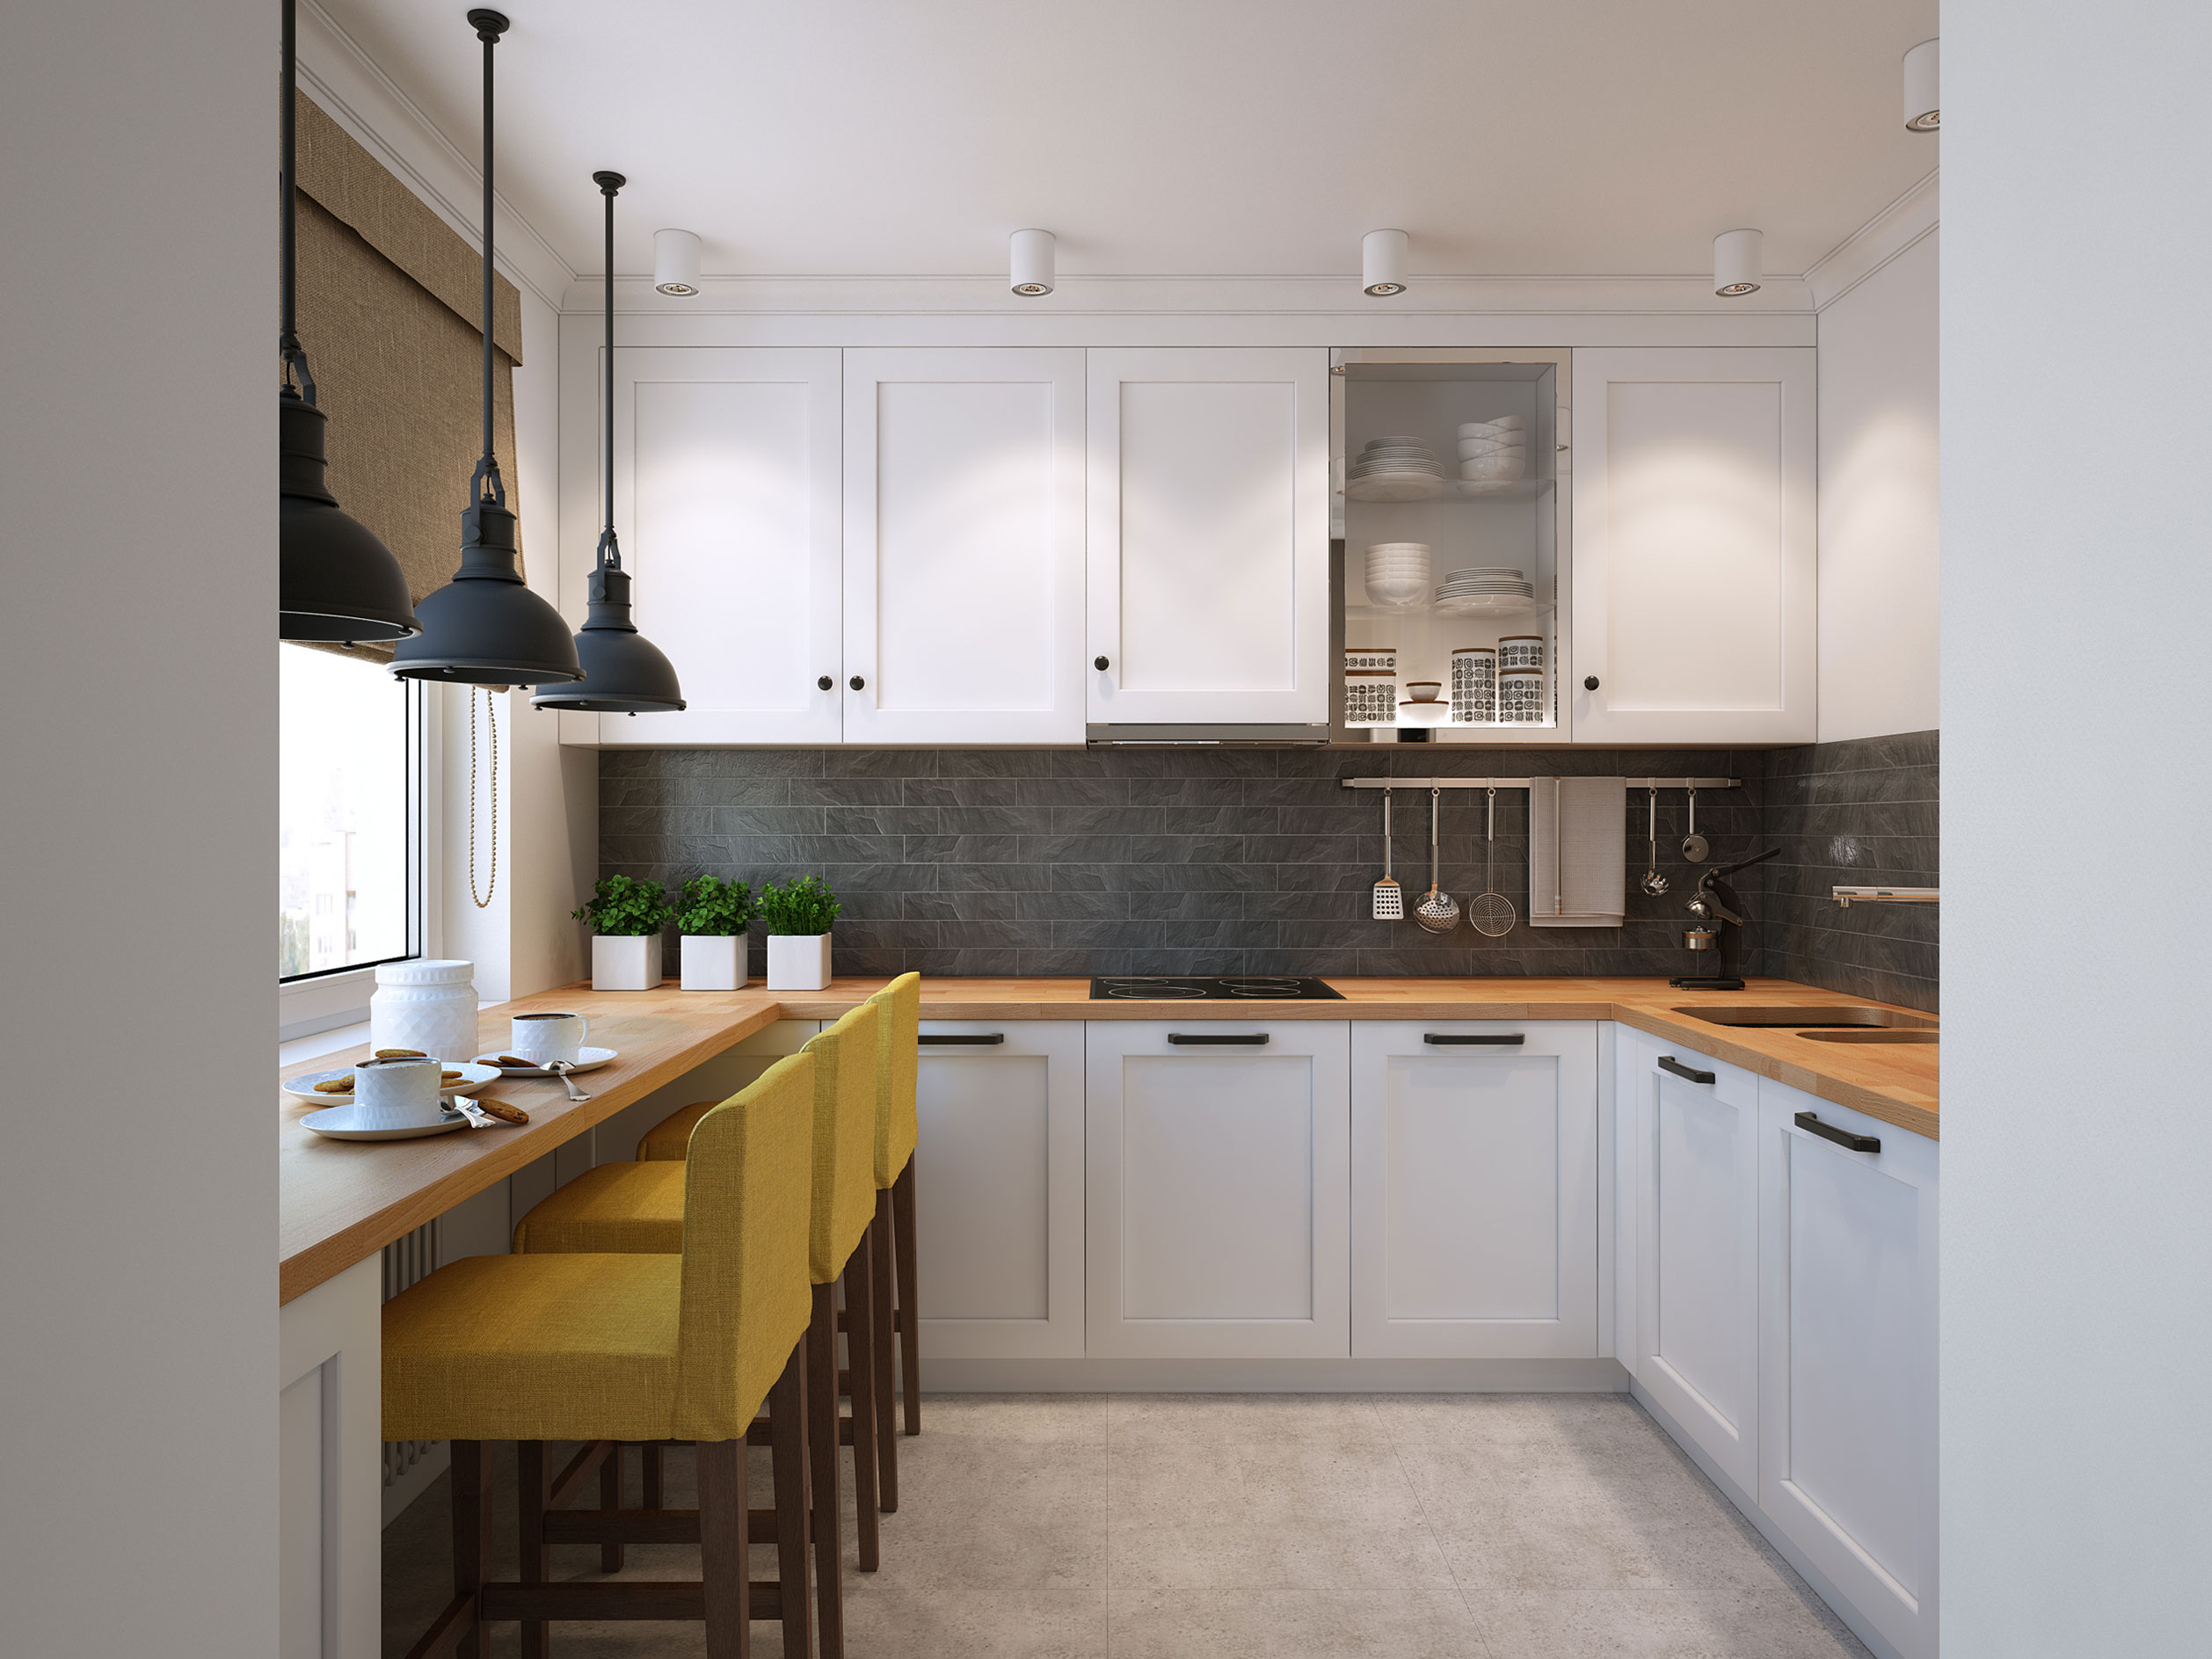 Contemporary Apartment in Moscow Visualized by Geometrium-06